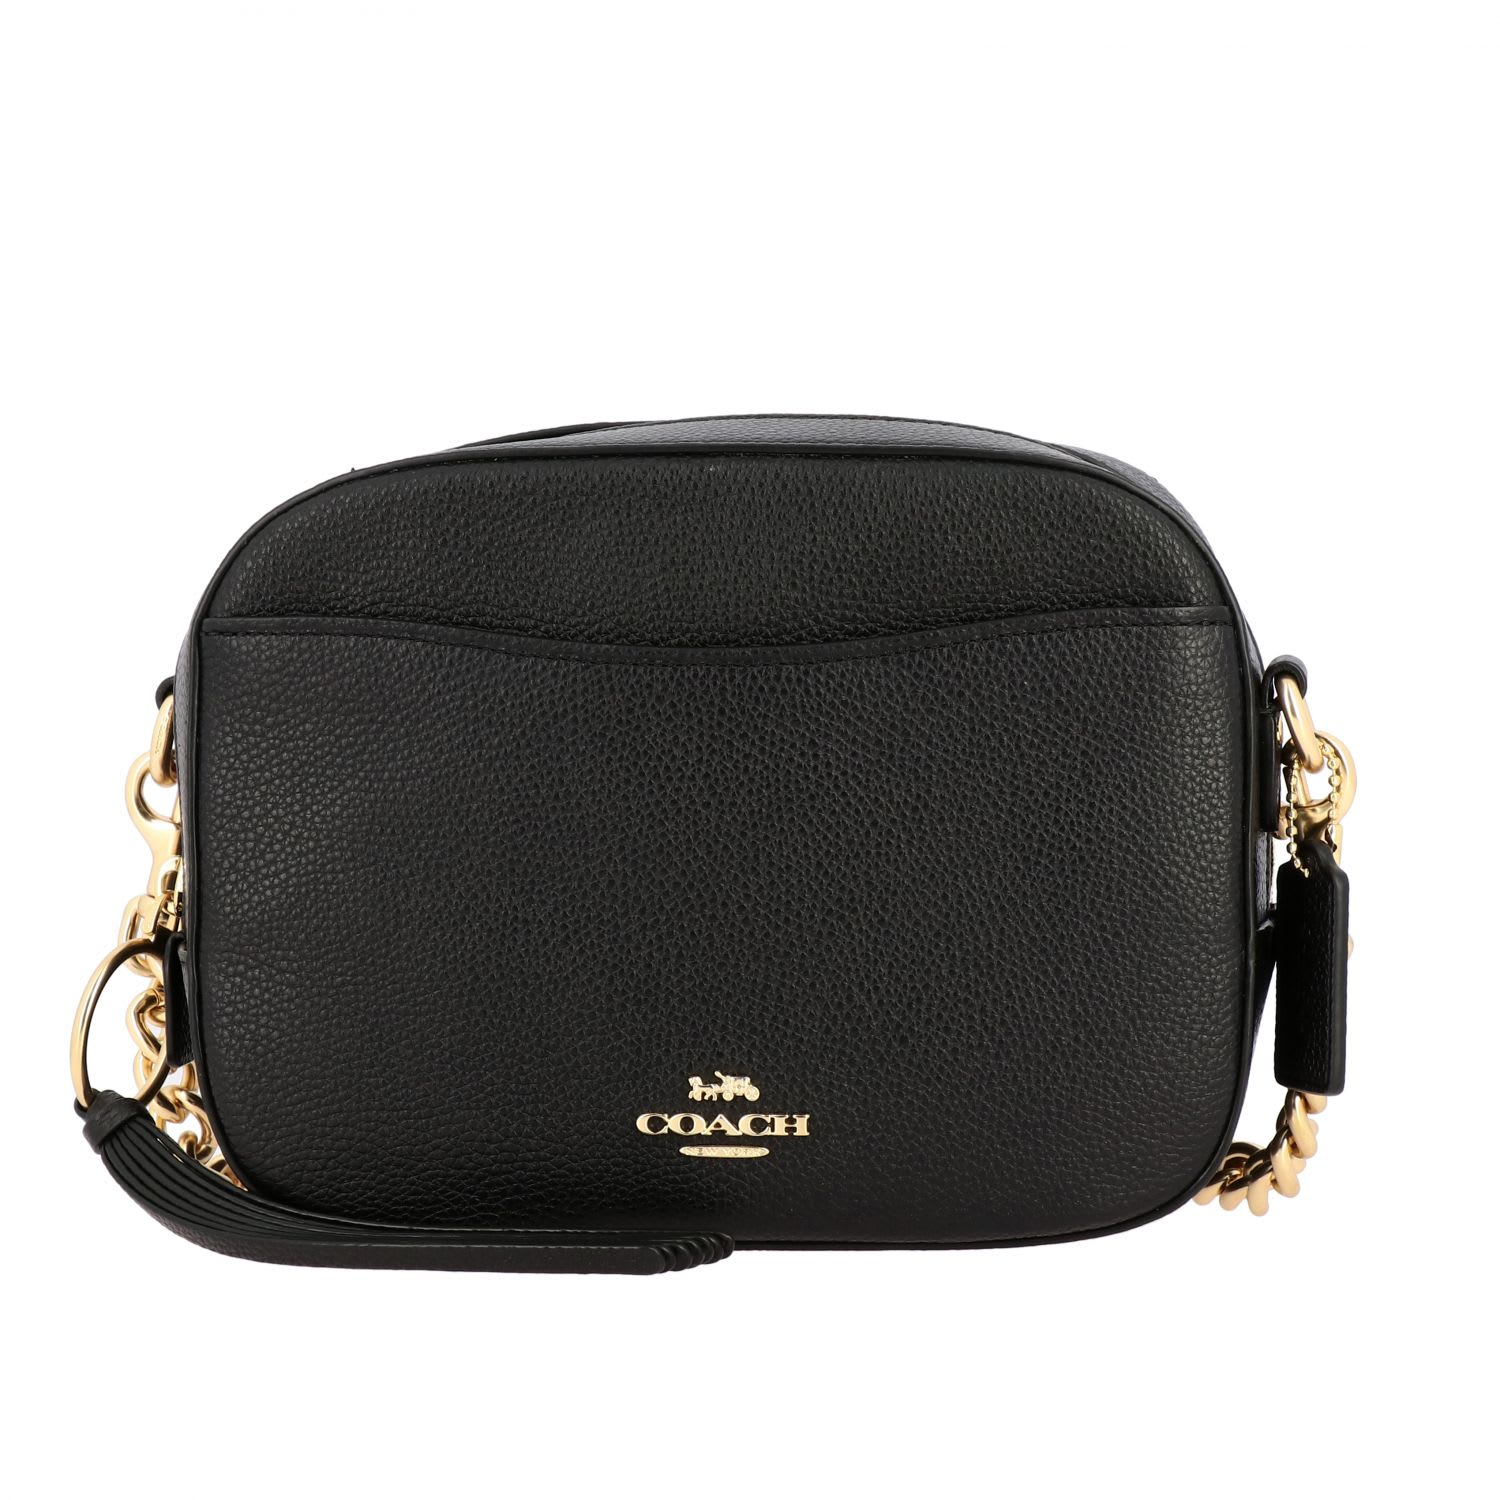 Coach Crossbody Bags Coach Camera Shoulder Bag In Grained Leather